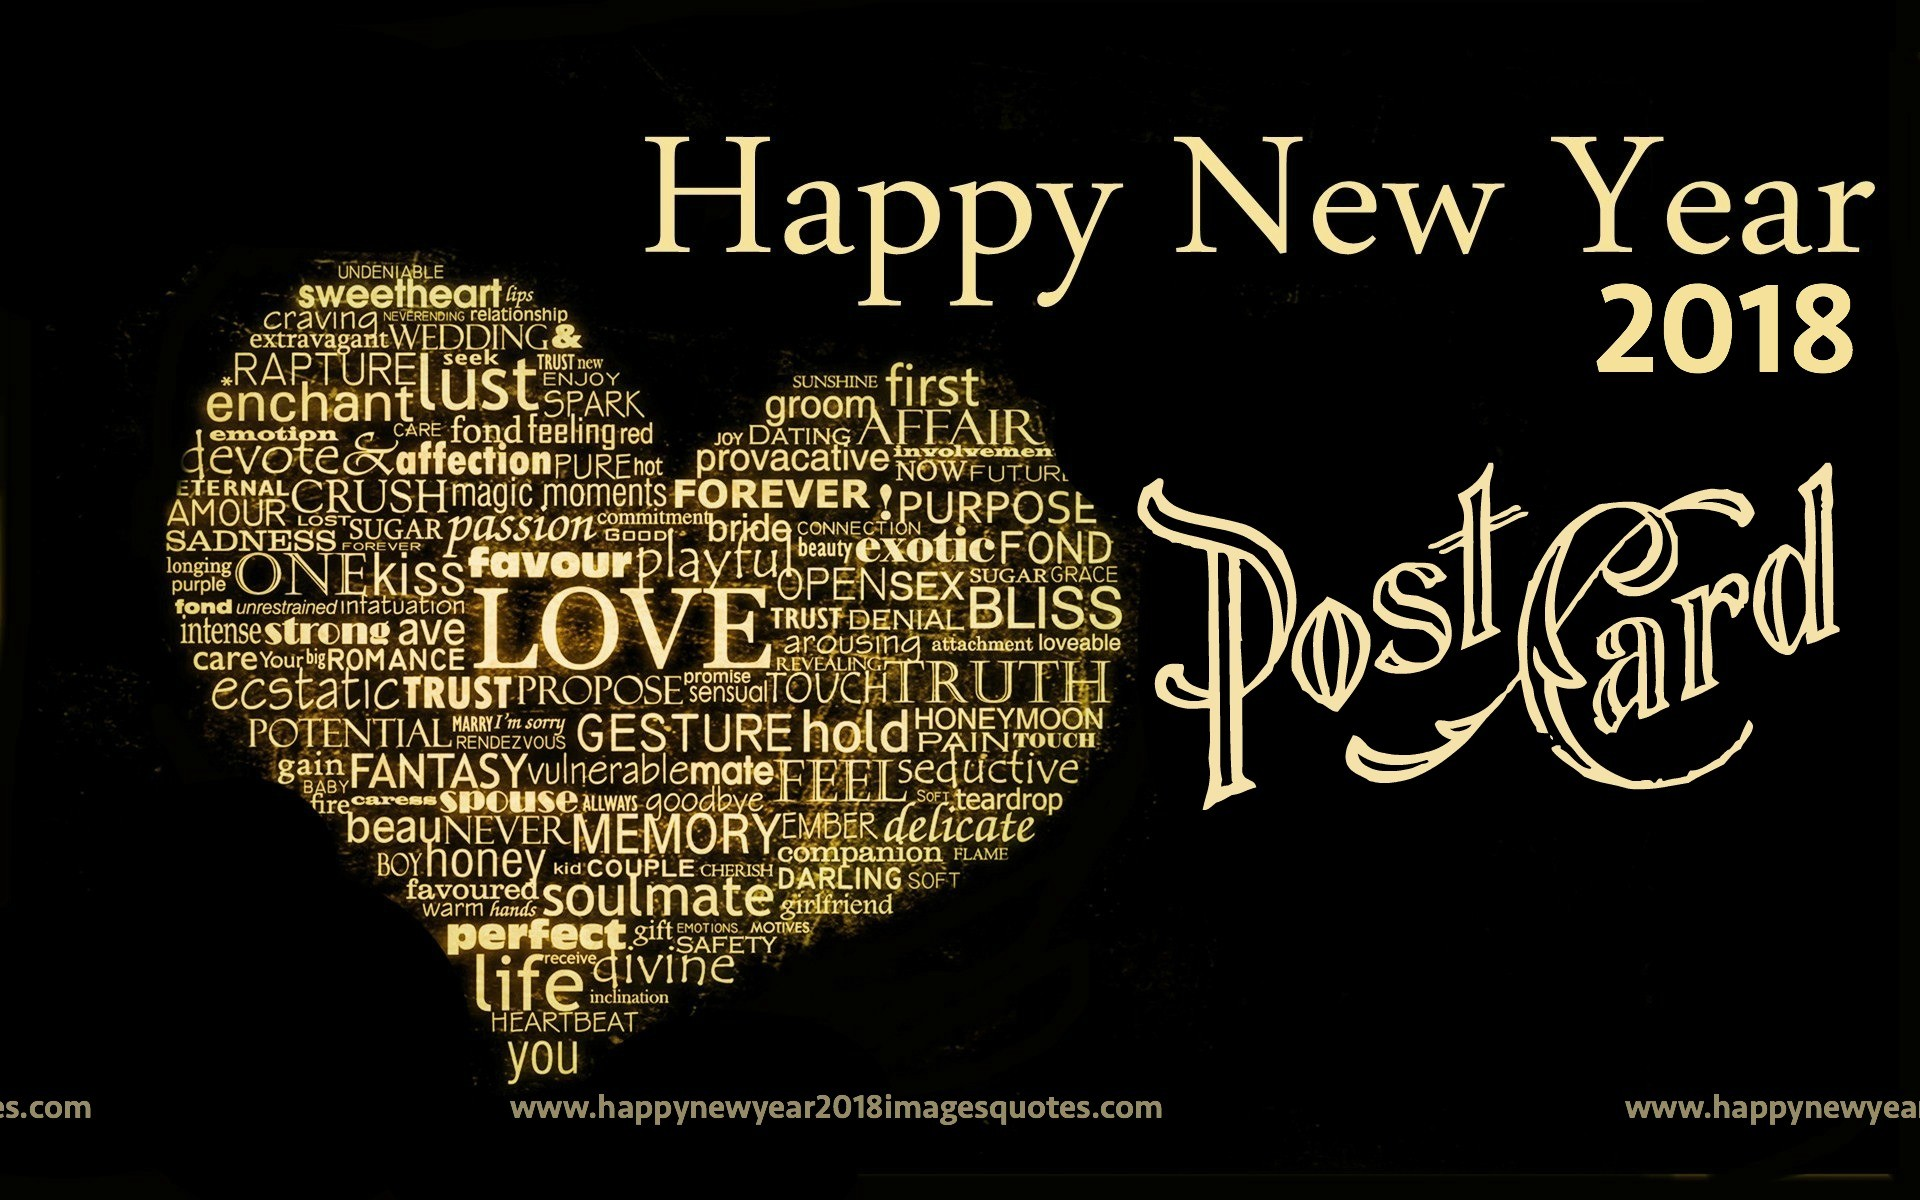 1920x1200 tags2018 happy new year photos 2018 new year photos 2018 new years photo happy new year 2018 photos happy new year photos 2018 new year 2018